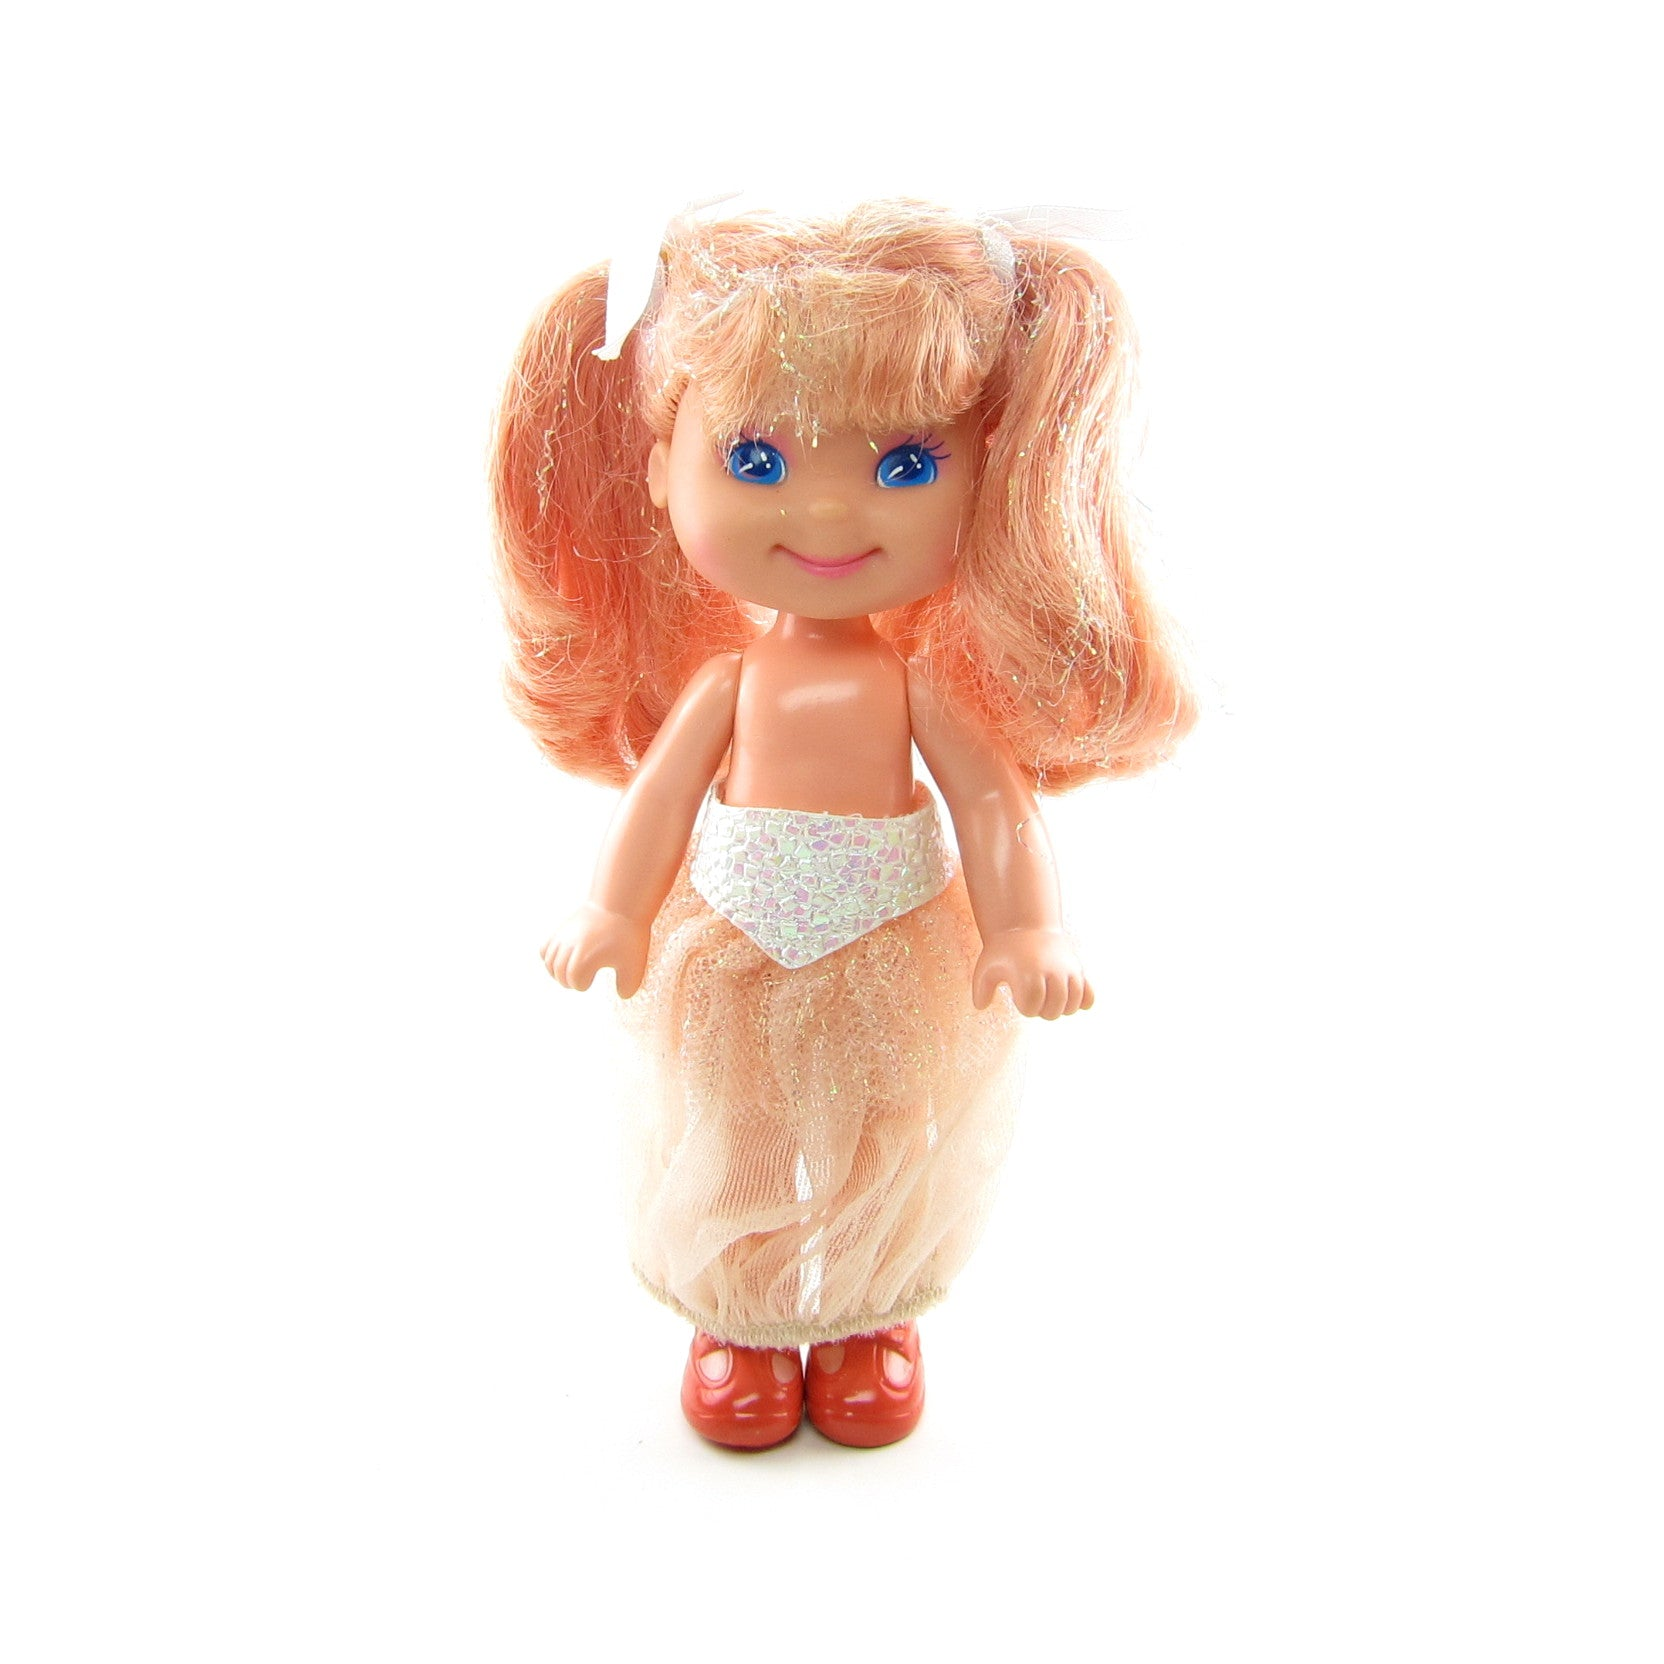 Peach Perfection Cherry Merry Muffin 1990 doll